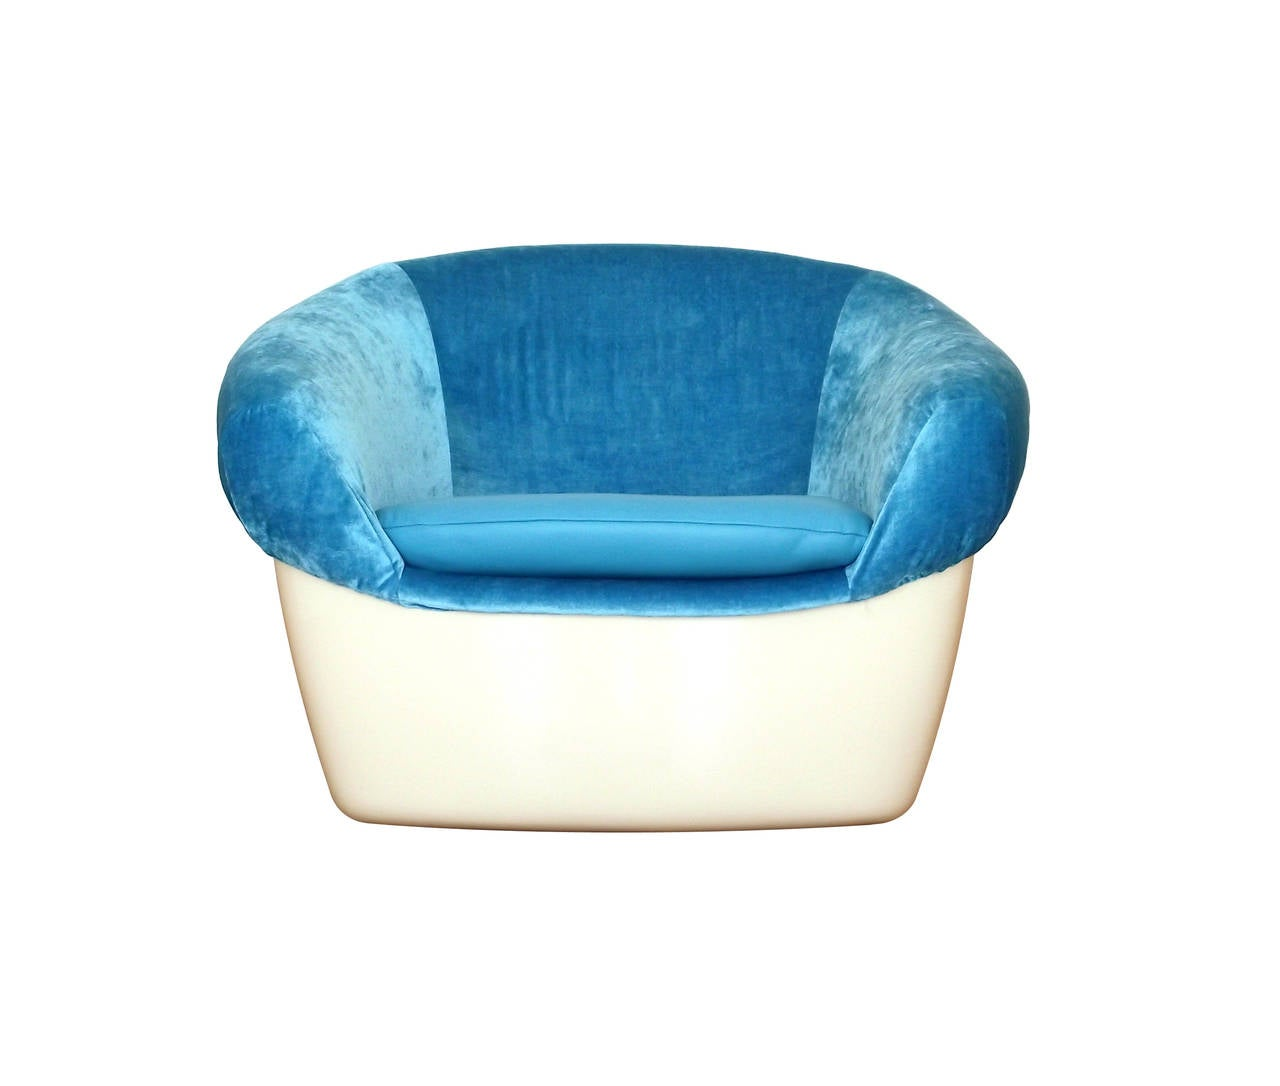 Oval lounge chair - Unique Space Age Lounge Chair In Fiberglass Blue Velvet And Leather 3